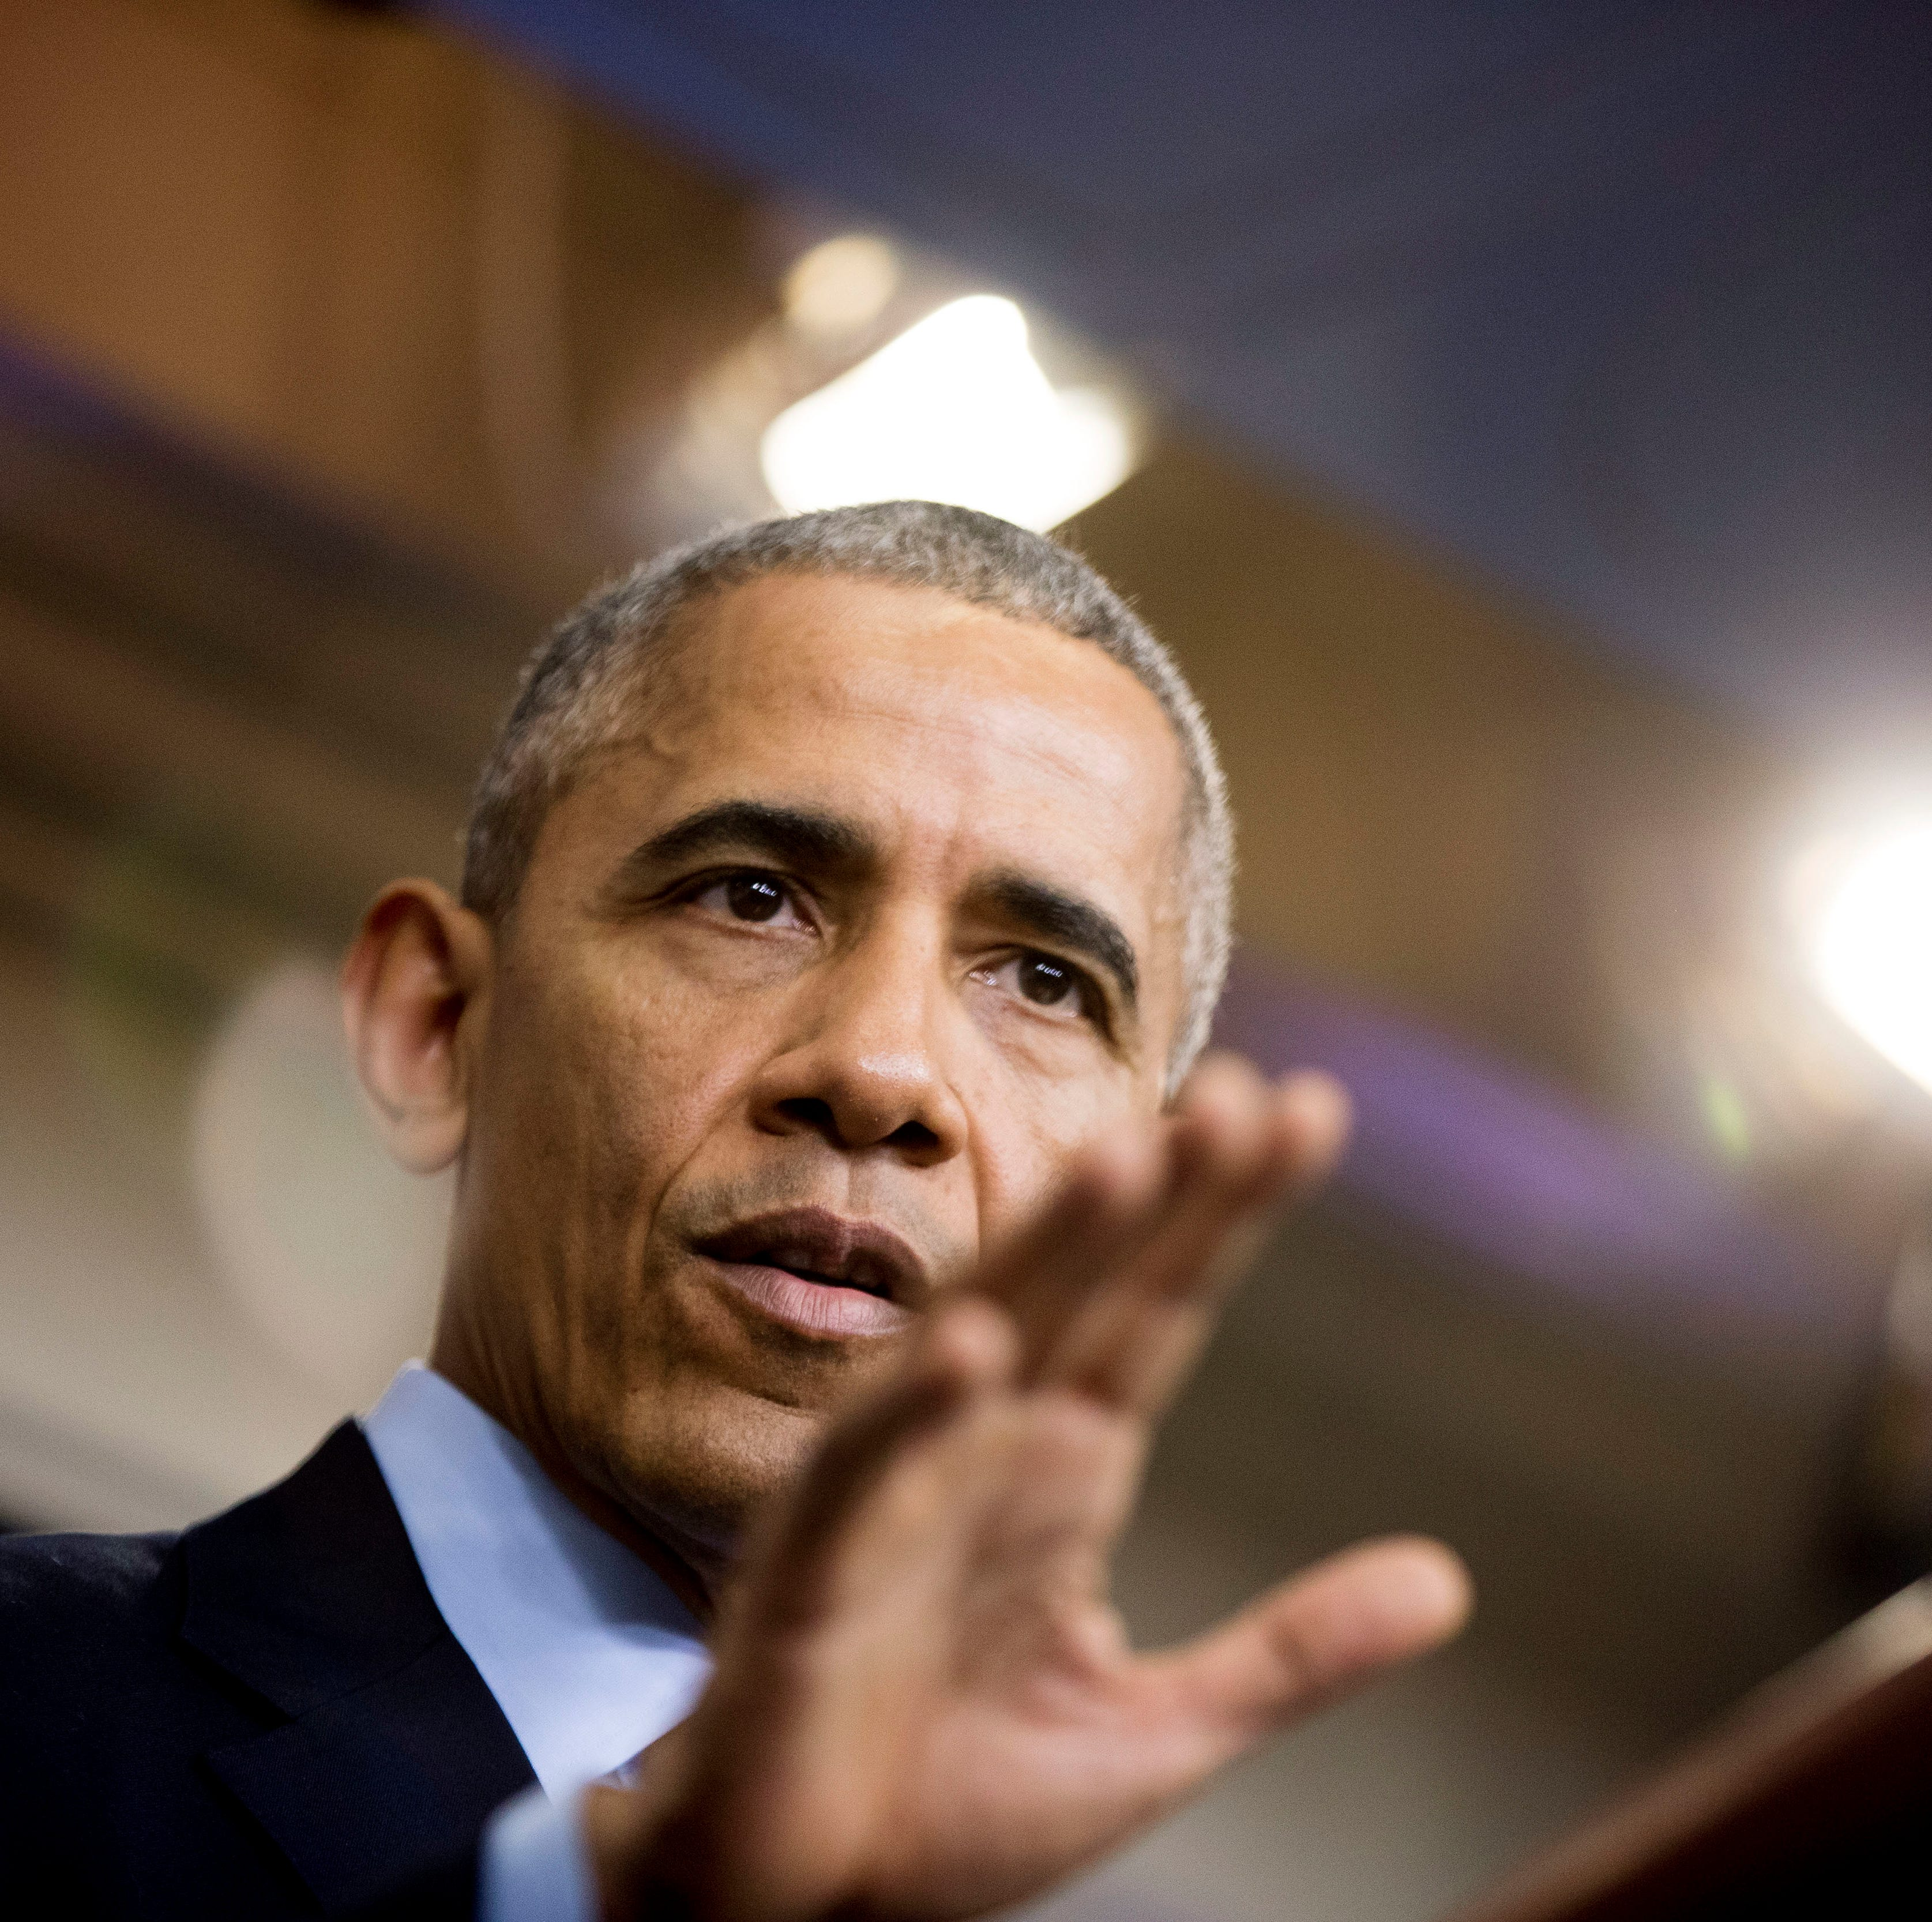 In this Dec. 16, 2016, photo, President Barack Obama speaks to the media during a news conference at the White House in Washington. The Trump administration isn't the first to grapple with the question of how to handle tens of thousands of immigrant families arriving on the U.S.-Mexico border. Four years ago, Obama faced a similar crisis when record numbers of Central American immigrants fleeing violence began showing up at the border. Officials had to deal with the same court case the current administration began fighting Thursday, June 21, 2018, a day after President Donald Trump issued a new executive order on the treatment of migrants. (AP Photo/Andrew Harnik) ORG XMIT: NYHK402